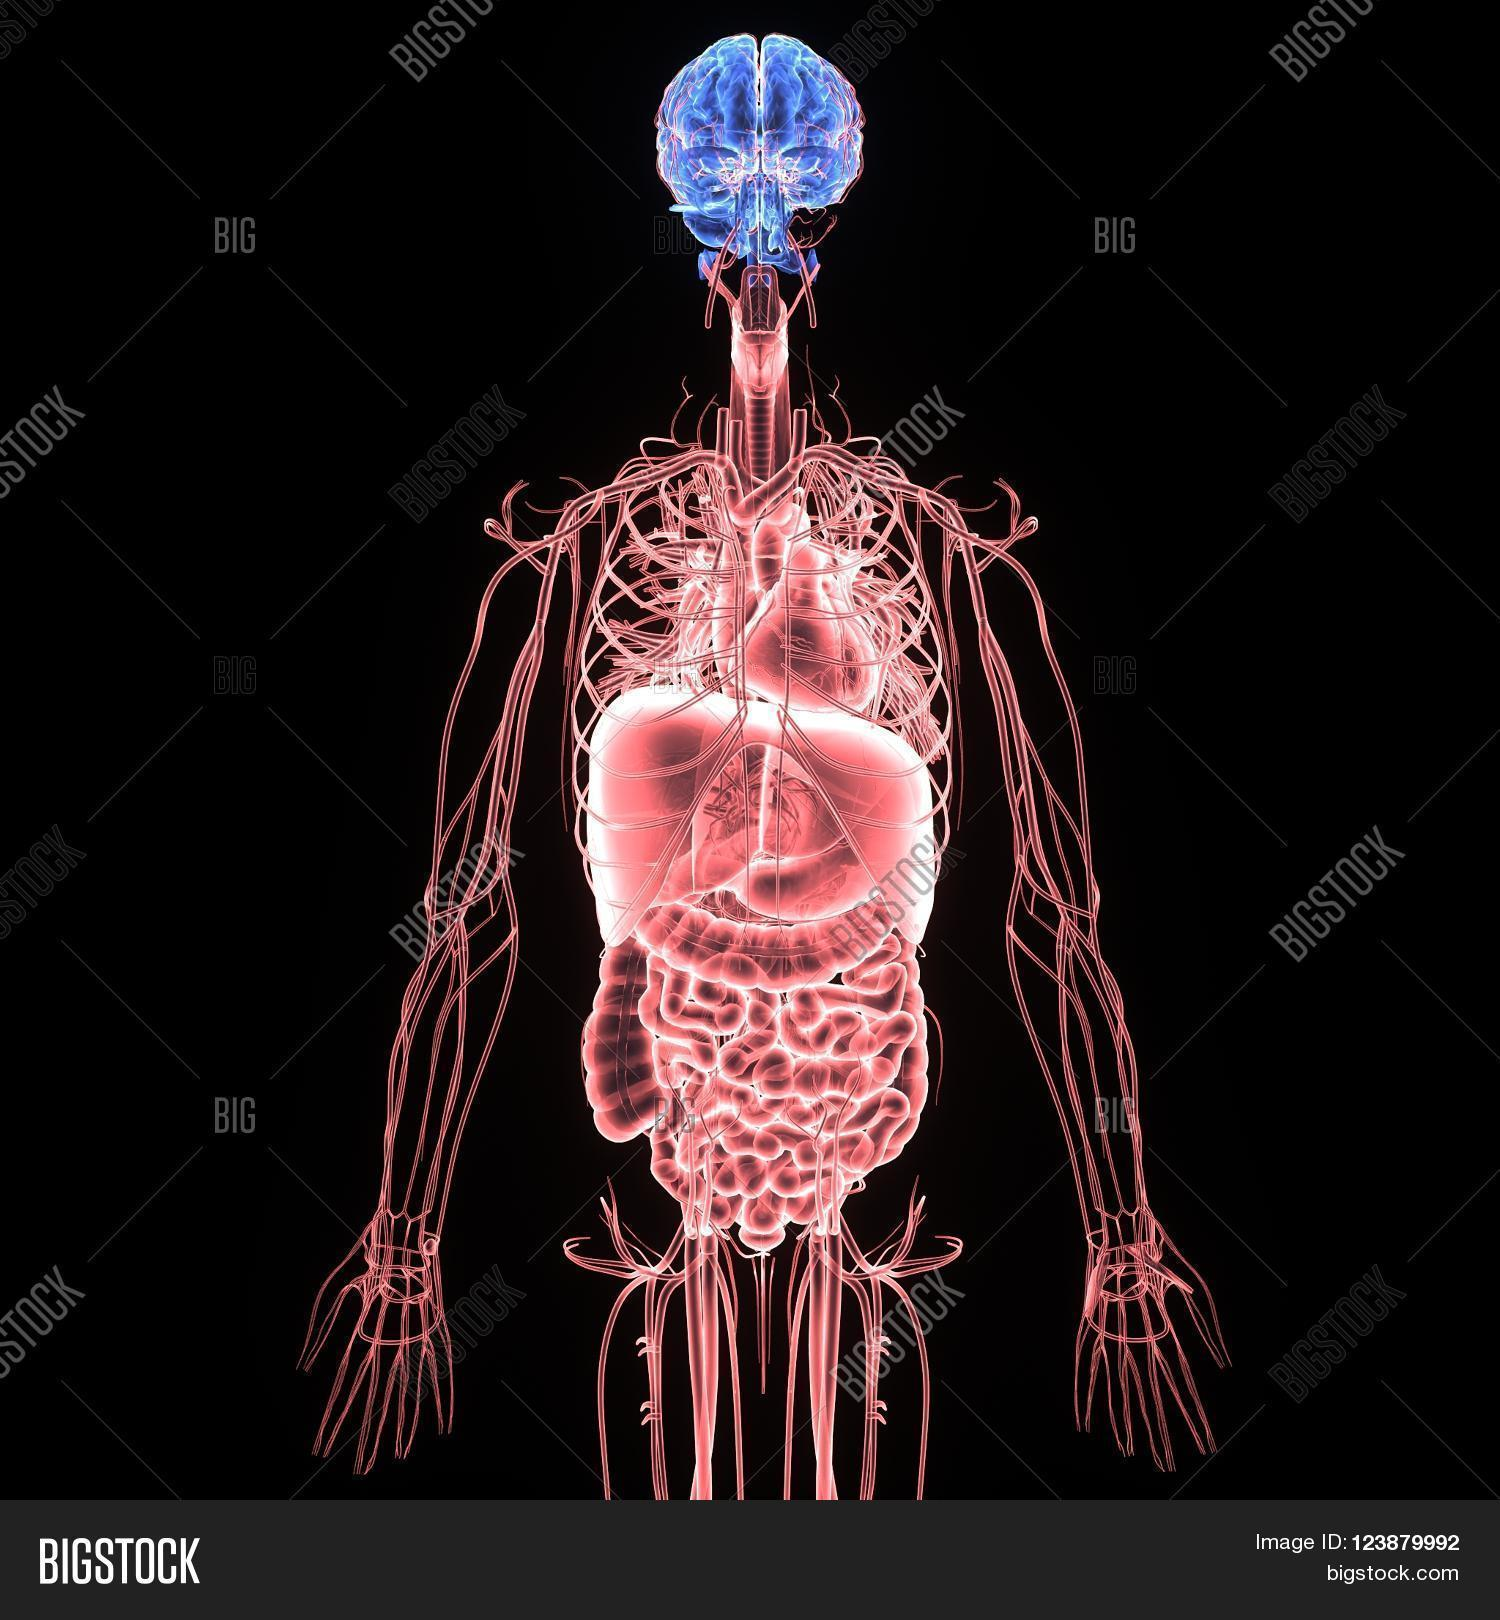 Human Body Entire Image Photo Free Trial Bigstock